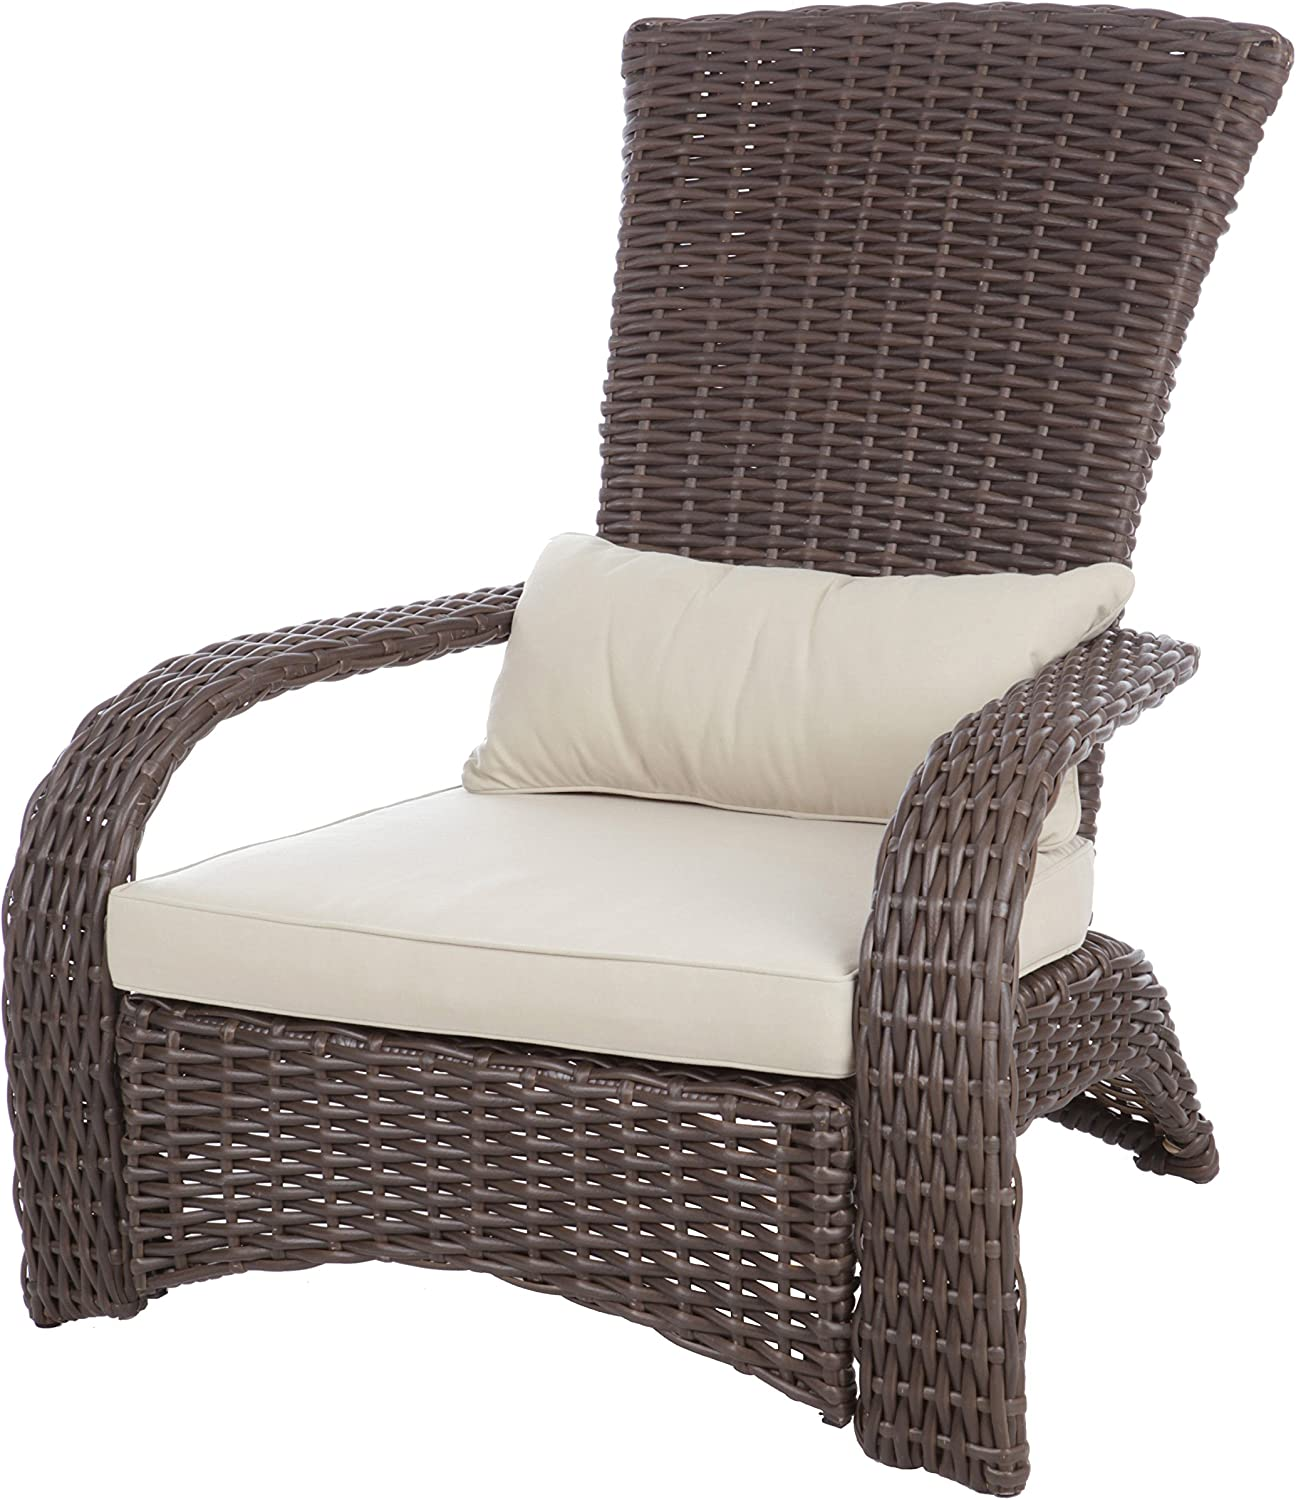 Patio Sense Deluxe Coconino Wicker Chair   All Weather Wicker   Beige Cushion and Lumbar Pillow   Adirondack Style Armchair   For Porch, Lawn, Garden, Backyard, Balcony, Deck, Pool, Indoor, Outdoor  : Home & Kitchen